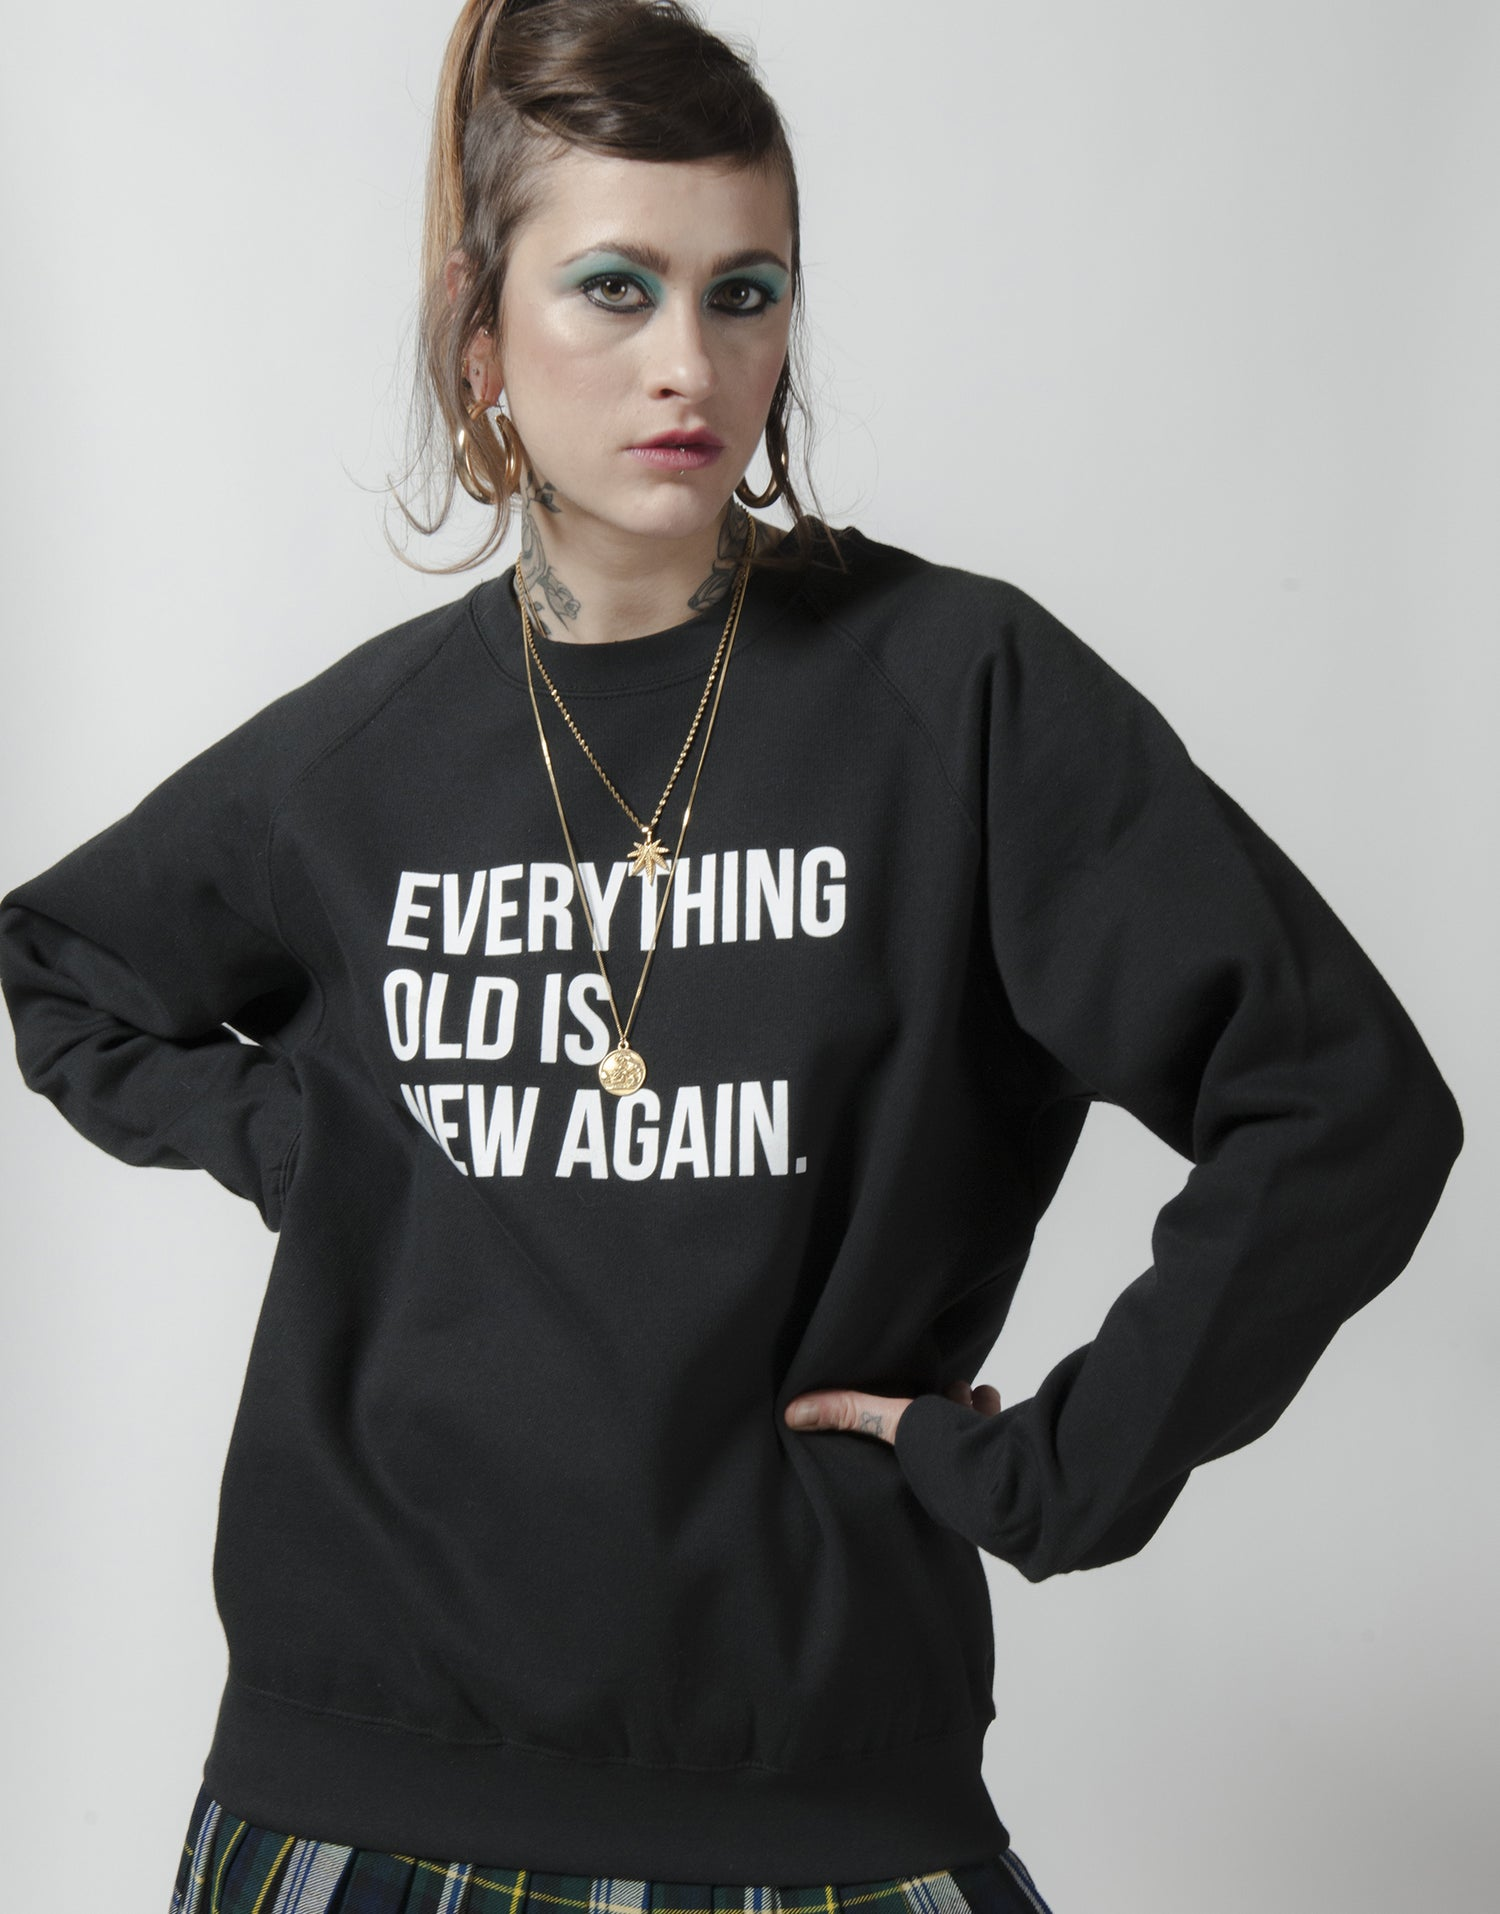 EVERYTHING OLD IS NEW AGAIN SWEATSHIRT